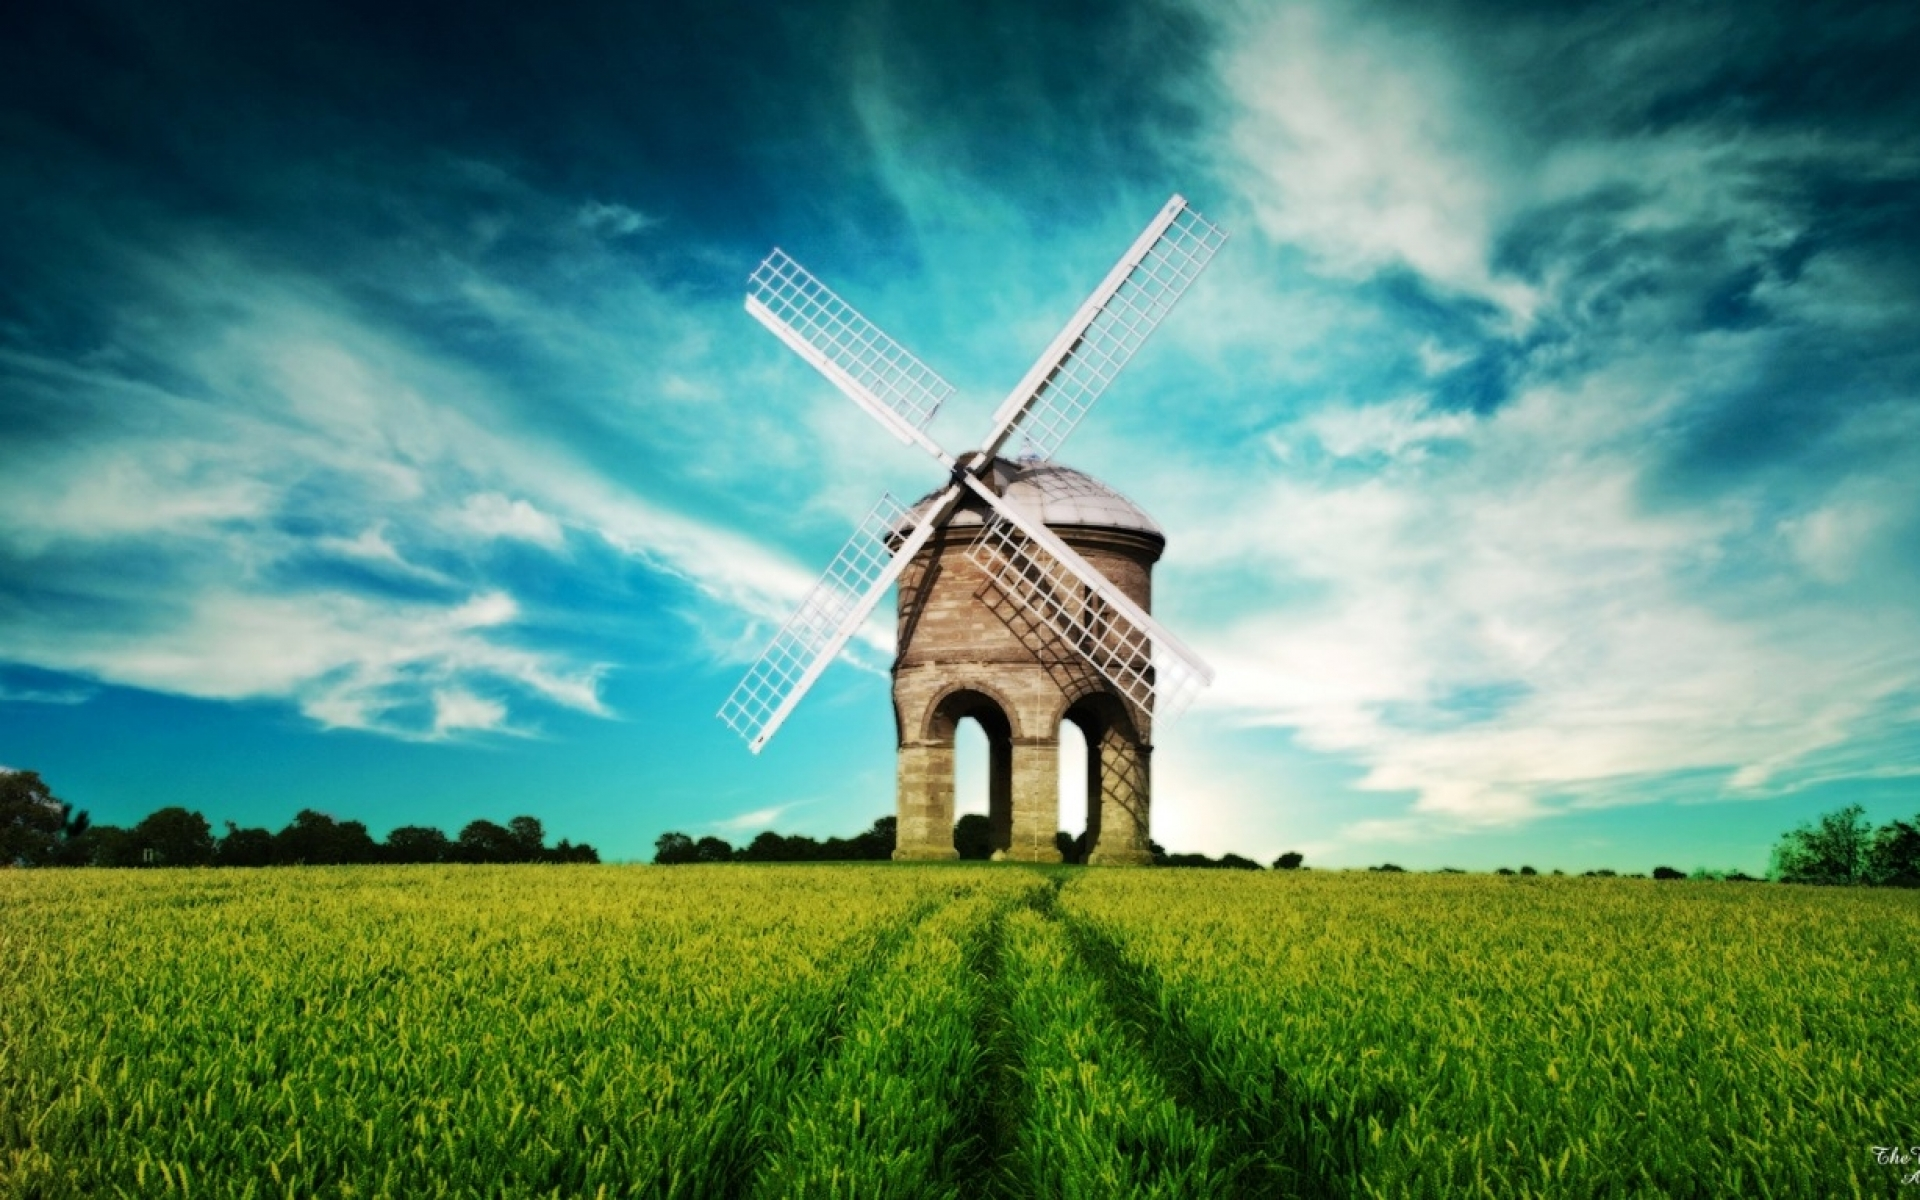 Windmill Sky & Grass Field wallpapers | Windmill Sky & Grass Field 371